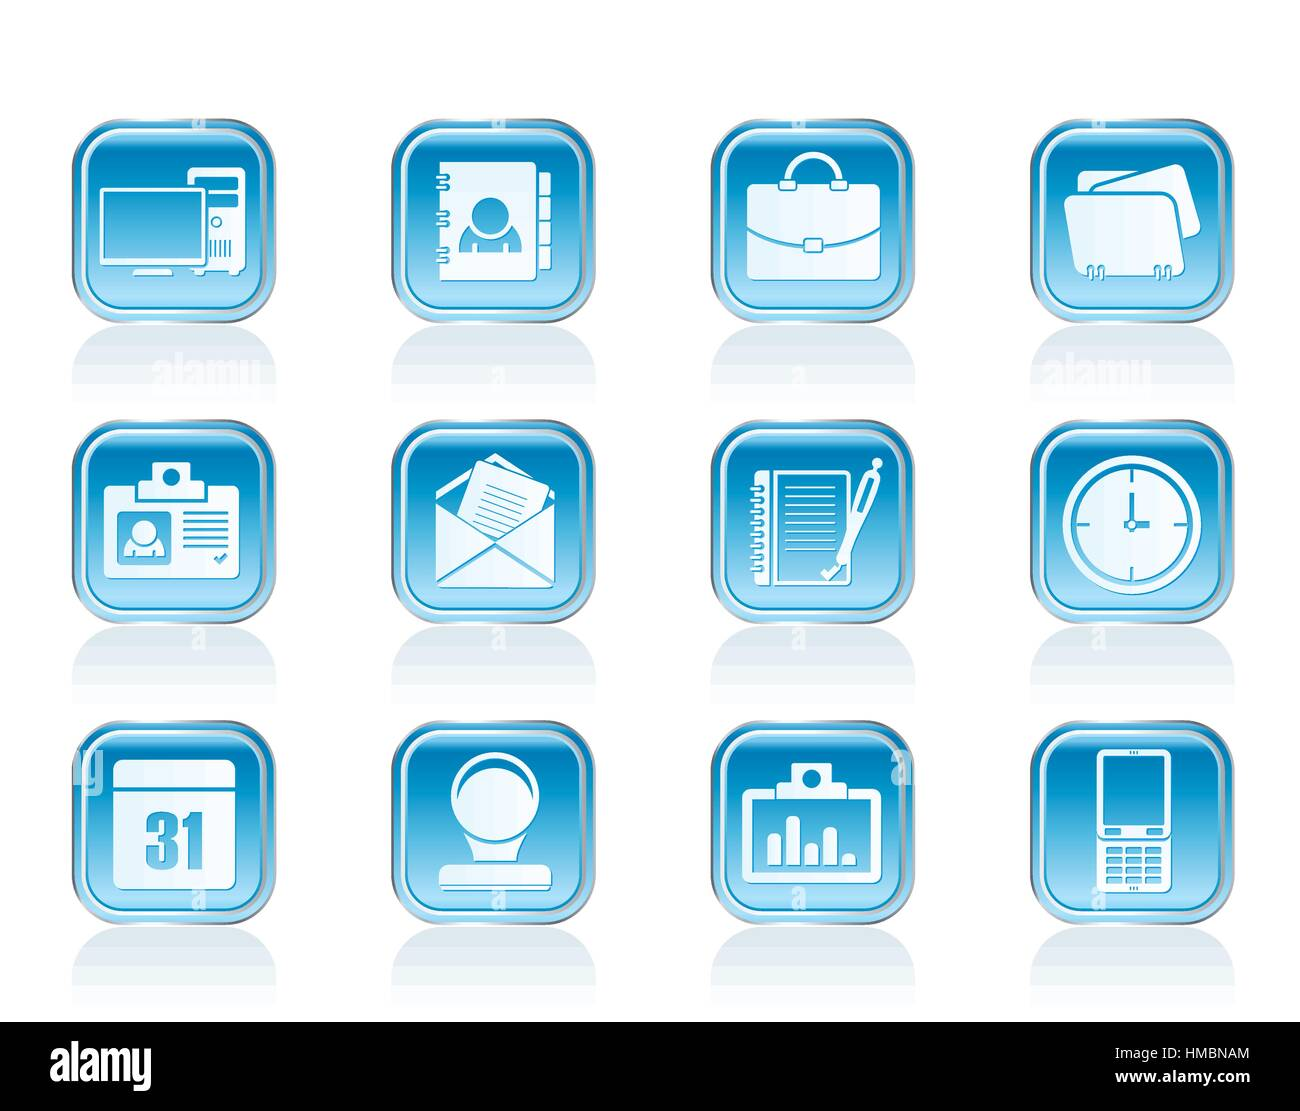 Web Applications,Business and Office icons, Universal icons Stock Vector